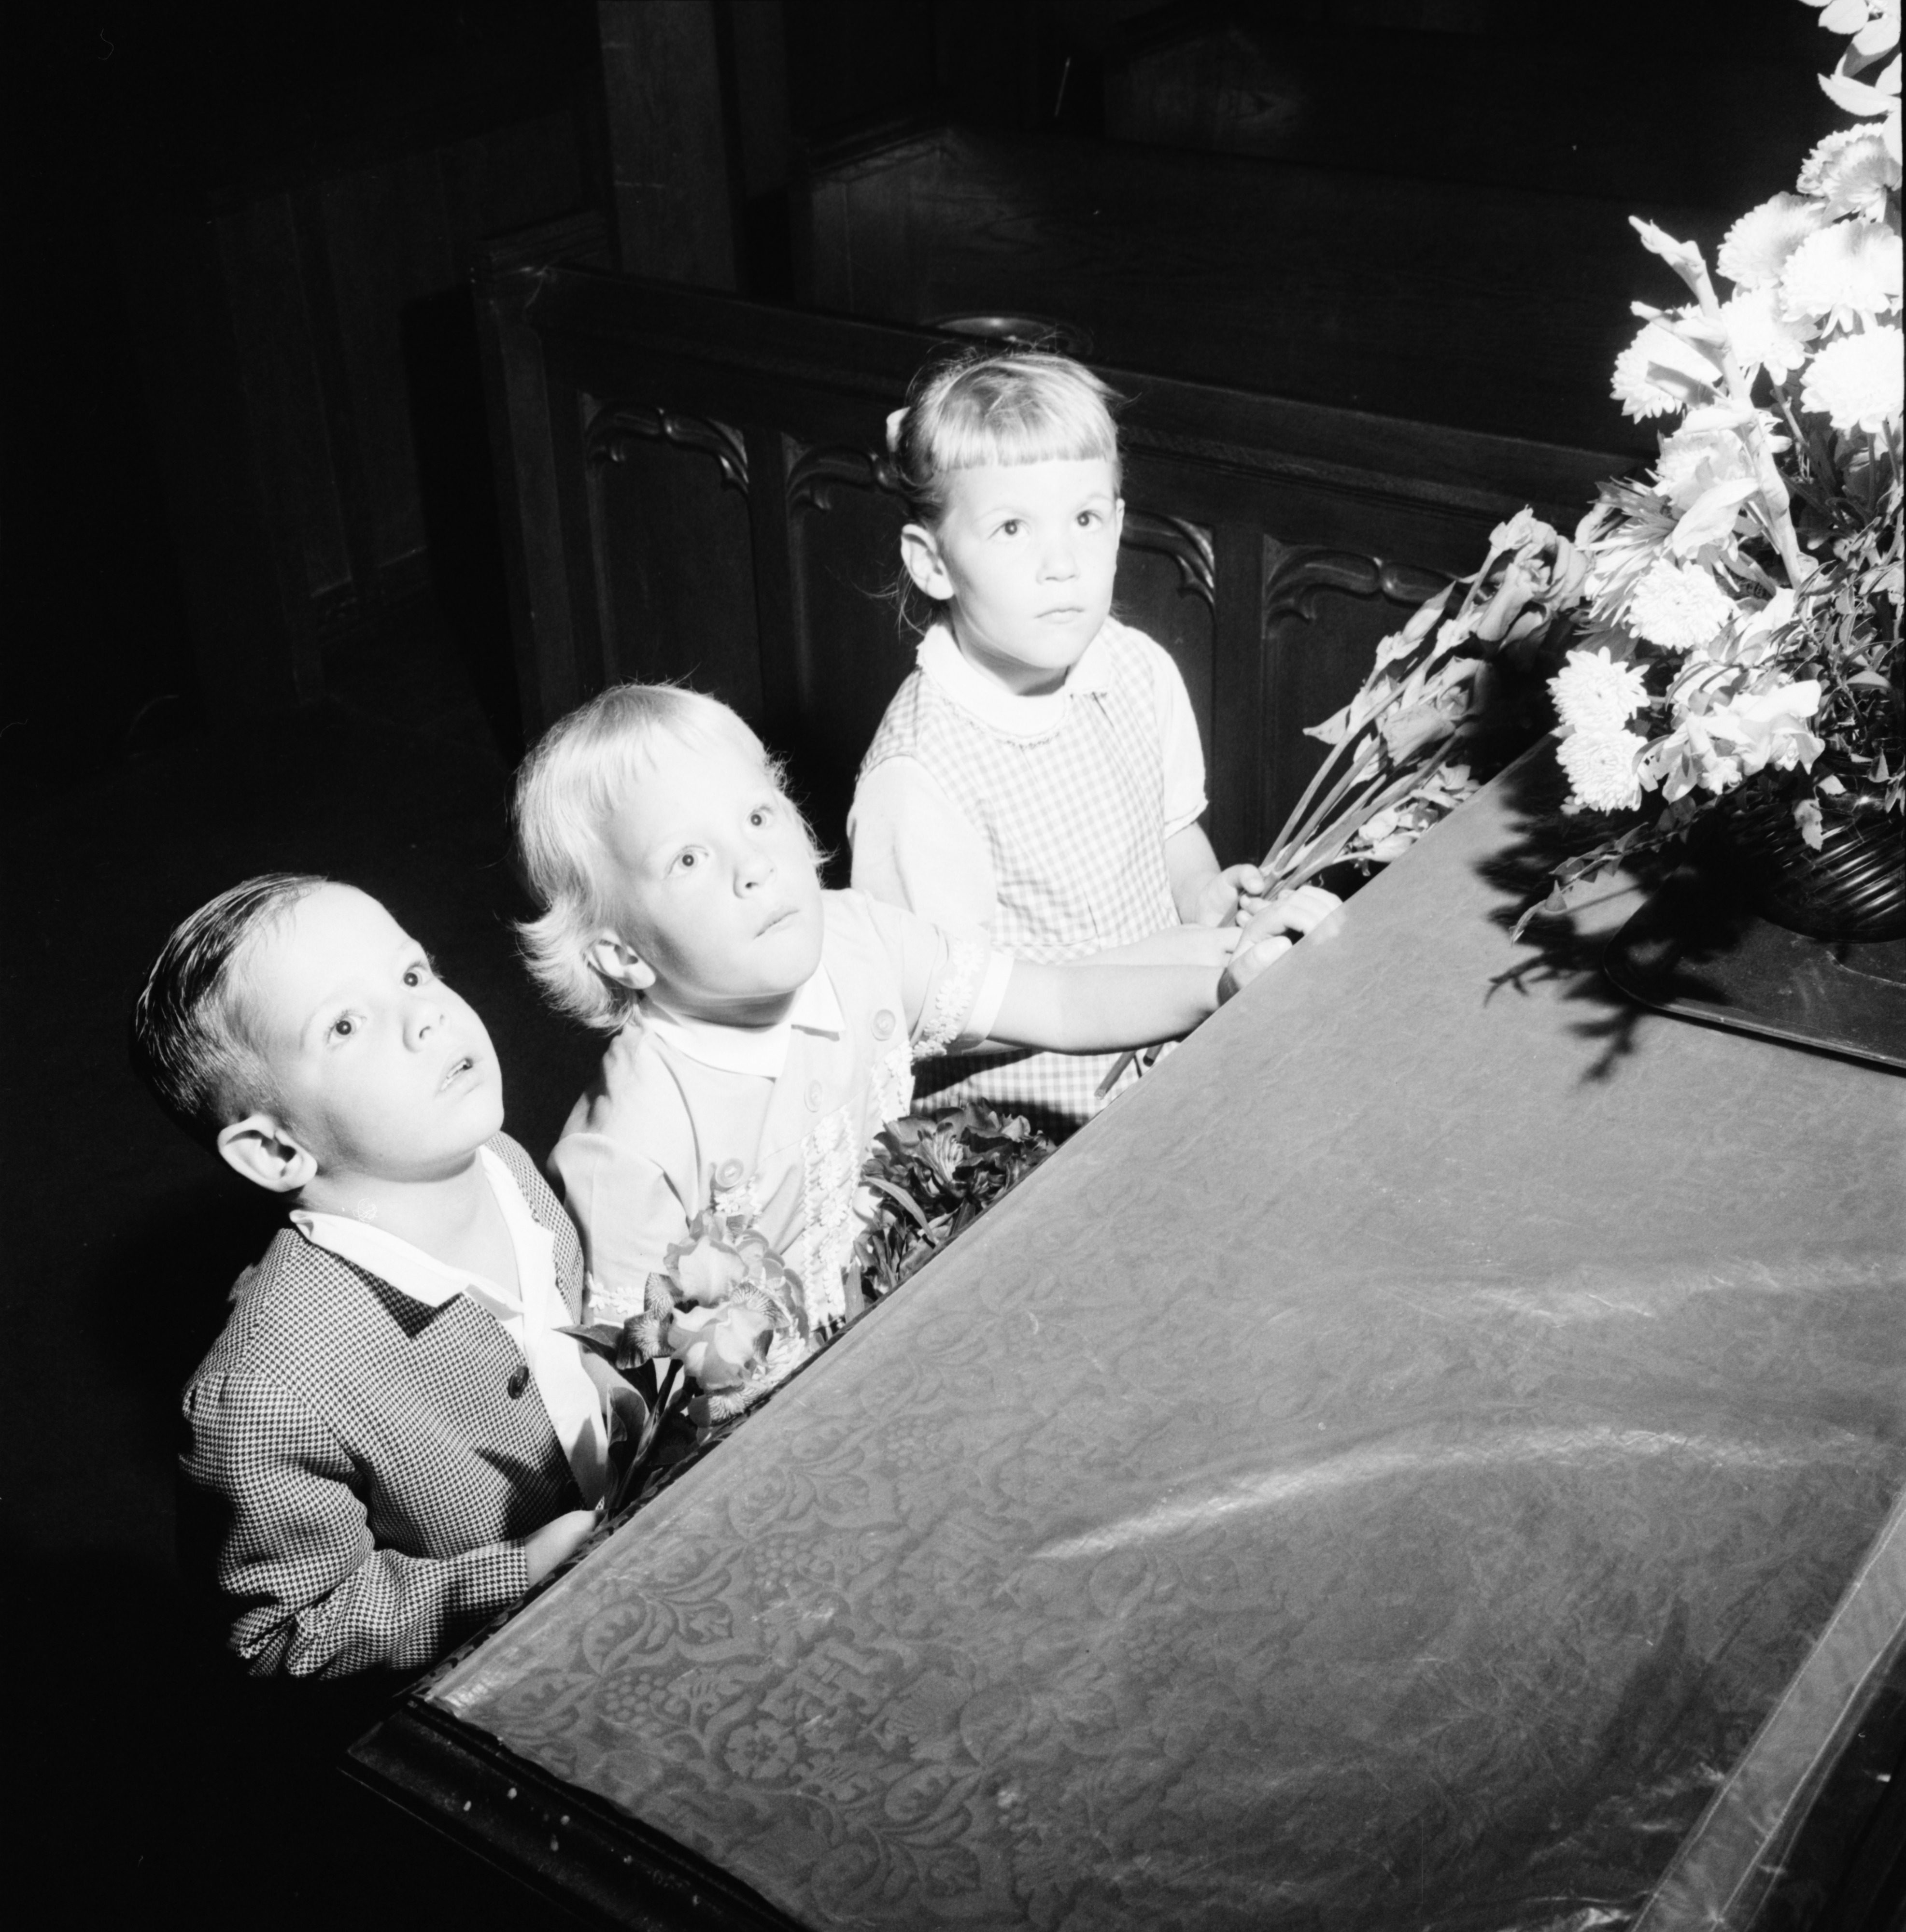 Children at First Congregational Church place flowers on altar, June 1964 image